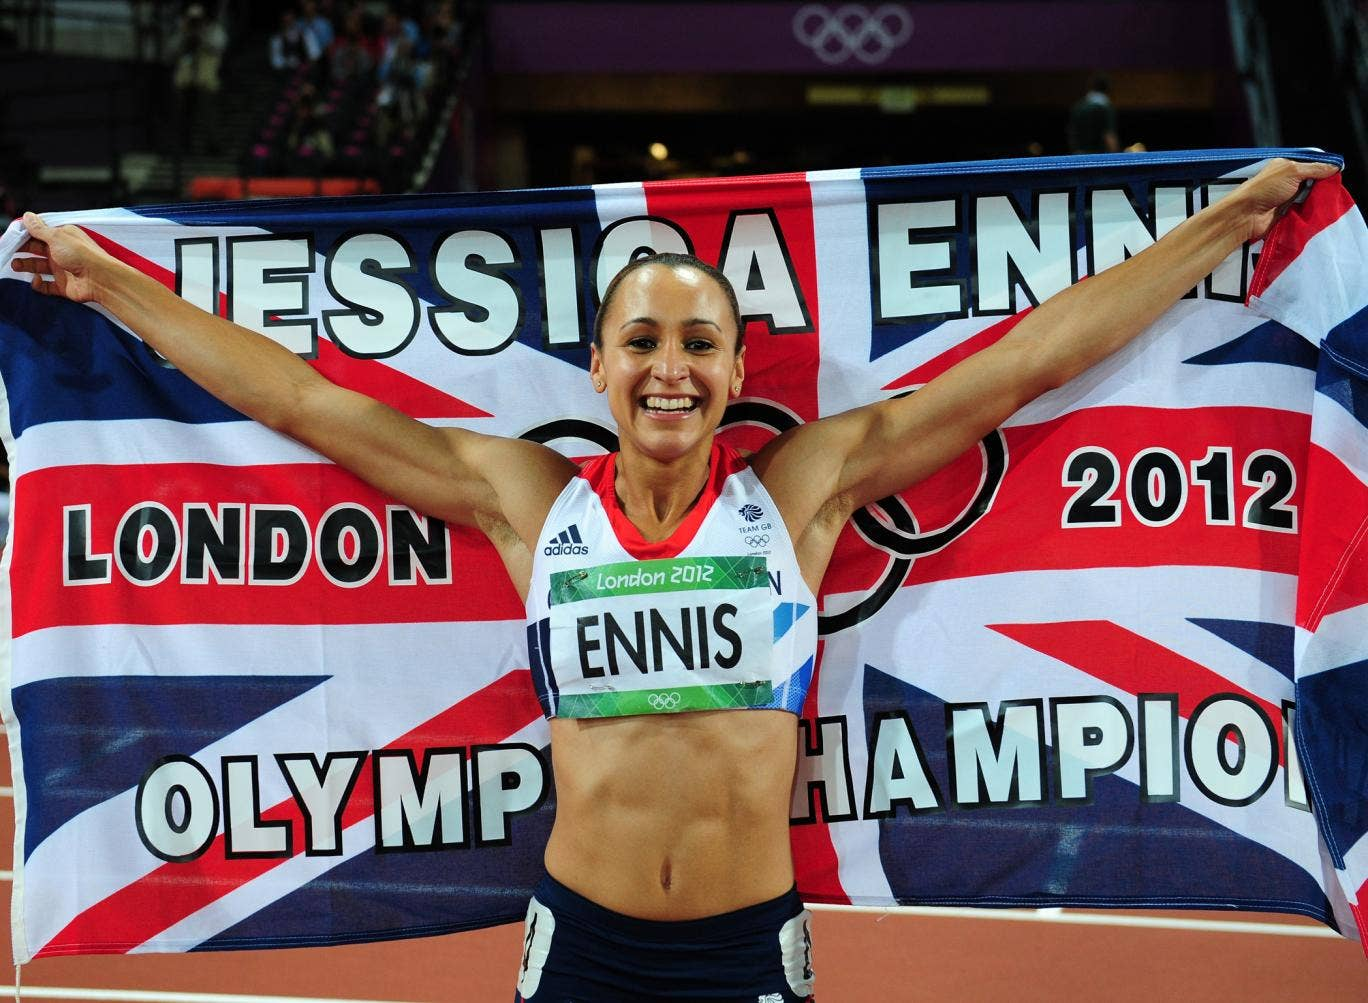 Jessica Ennis, 26, won gold in the heptathlon at the Olympics.  Despite the pressure of being dubbed the face of London 2012, the Sheffield star won gold when she clocked a British points record of 6,955 and set the fastest-ever heptathlon time in the 100